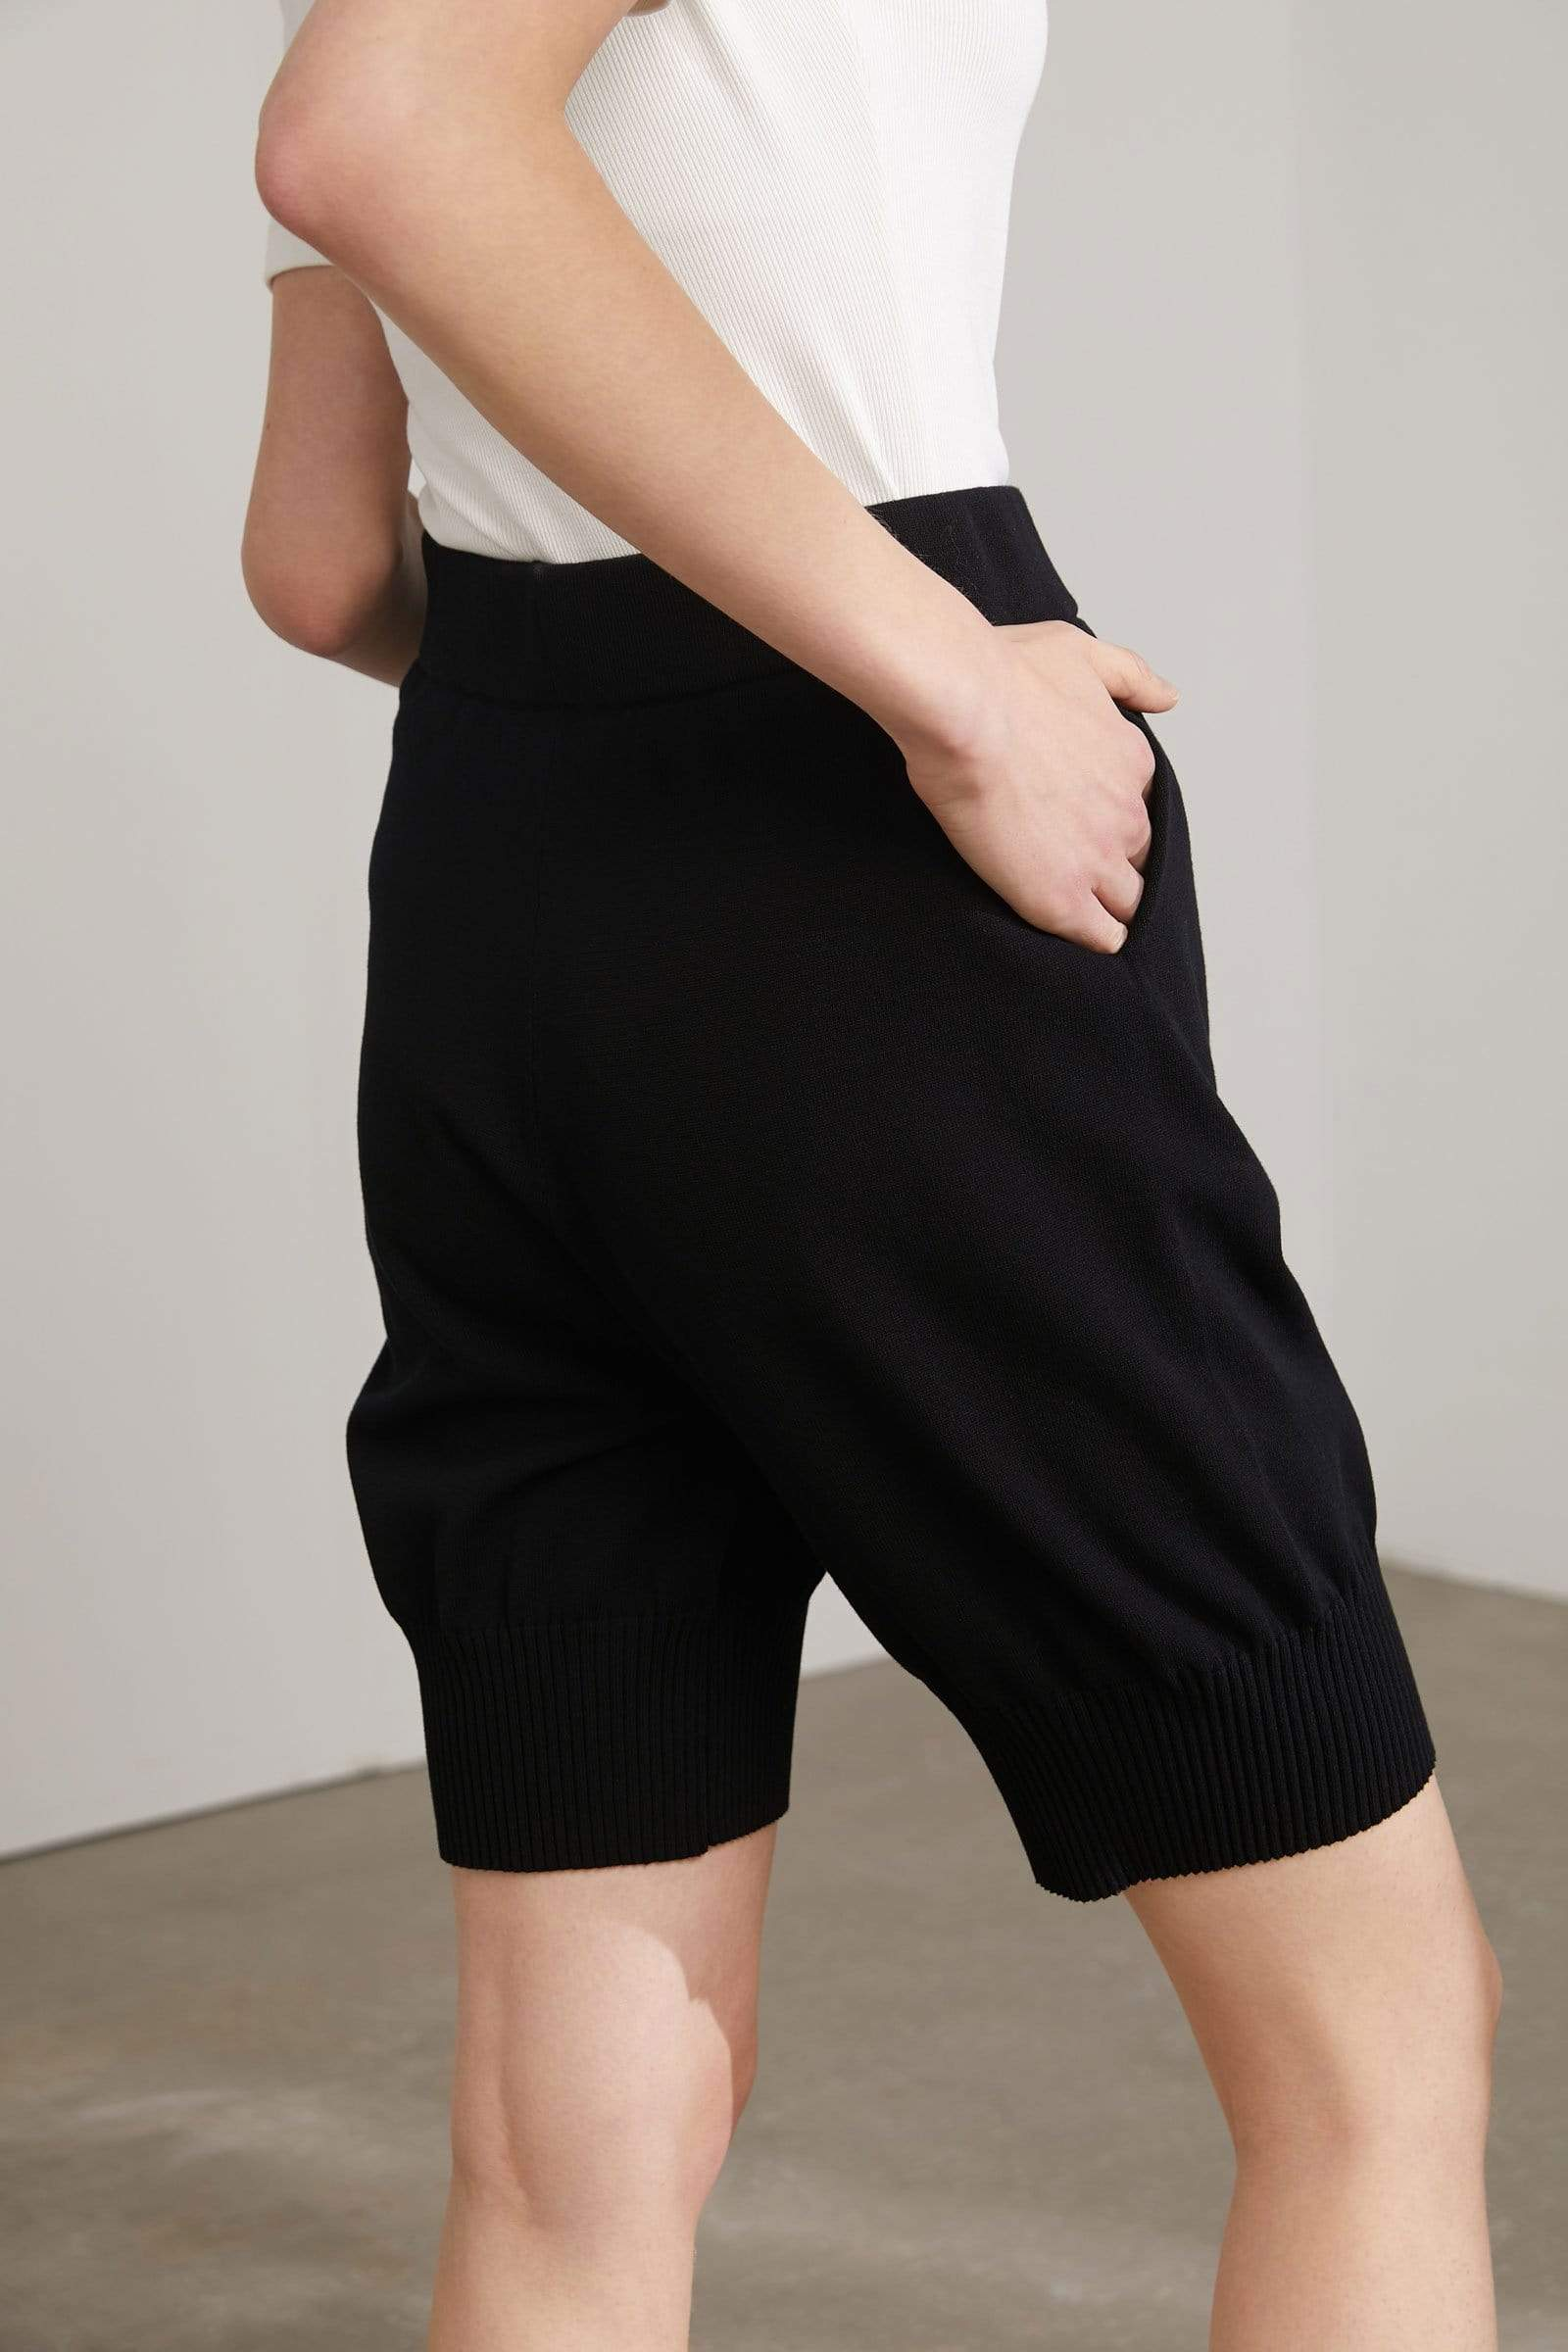 Denise Black Bermuda Shorts